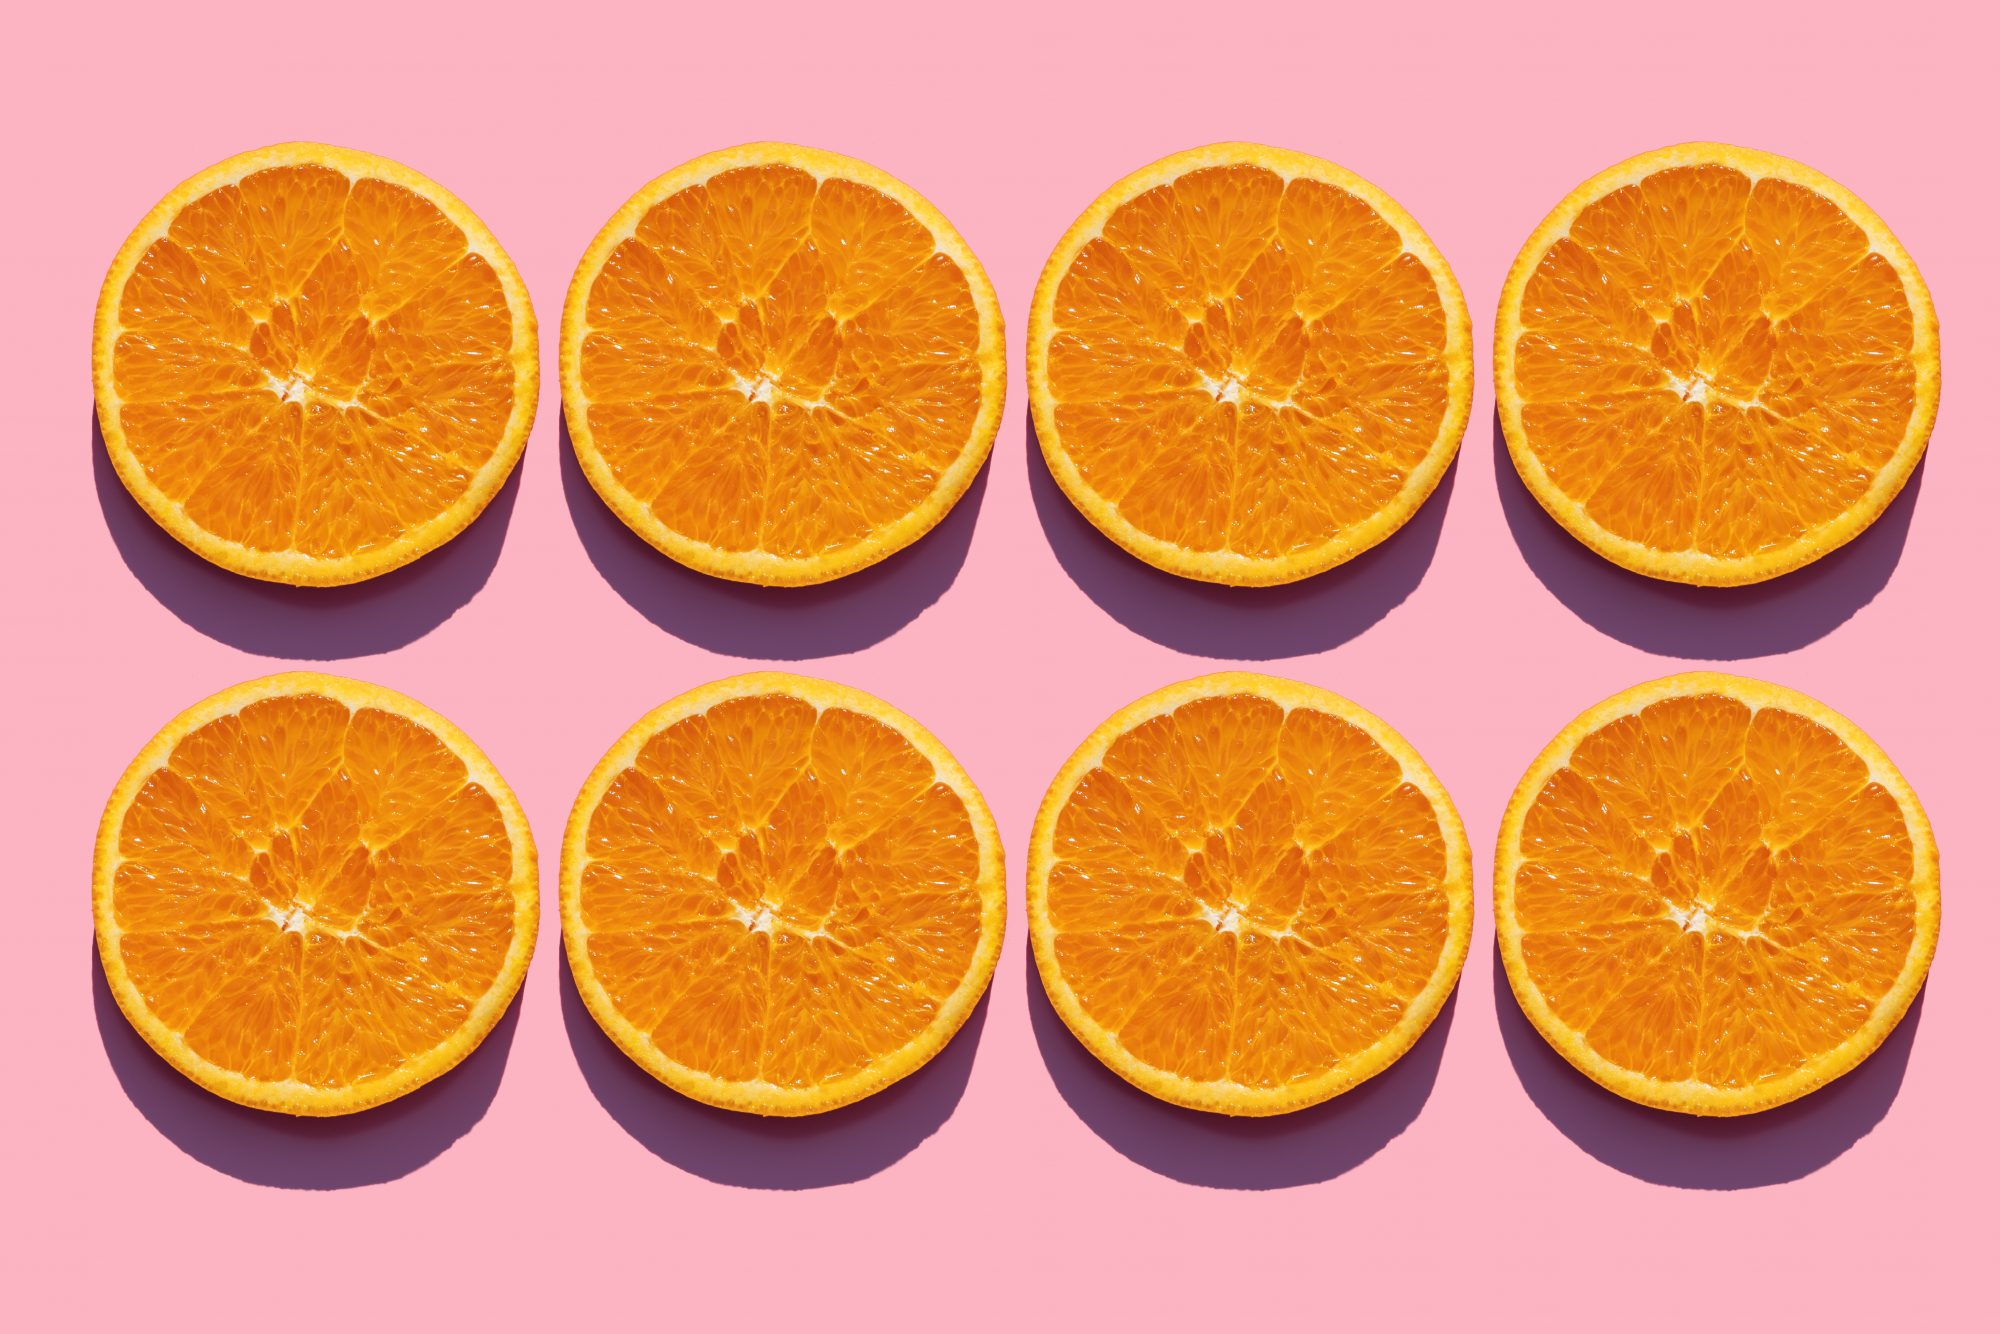 orange-benefits: slices of orange on a pink background